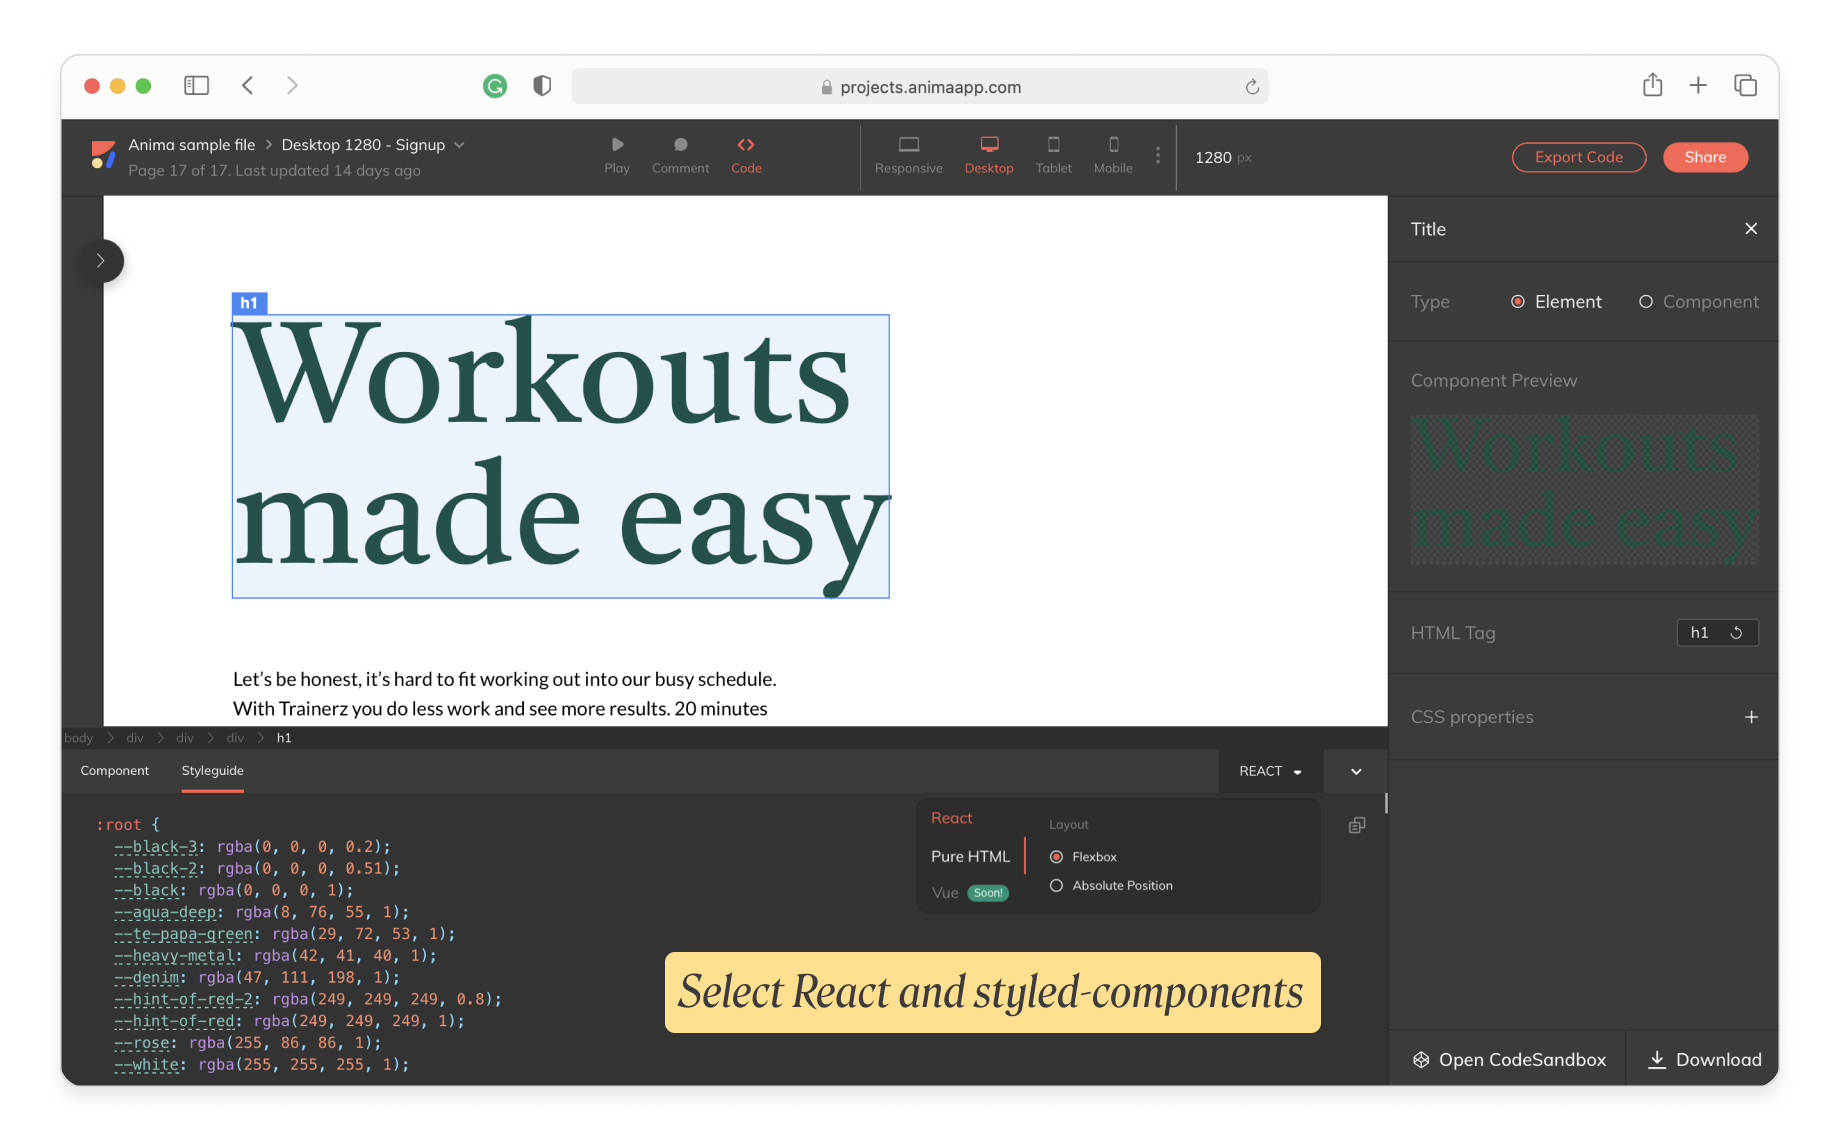 Get React & styled-components: Anima